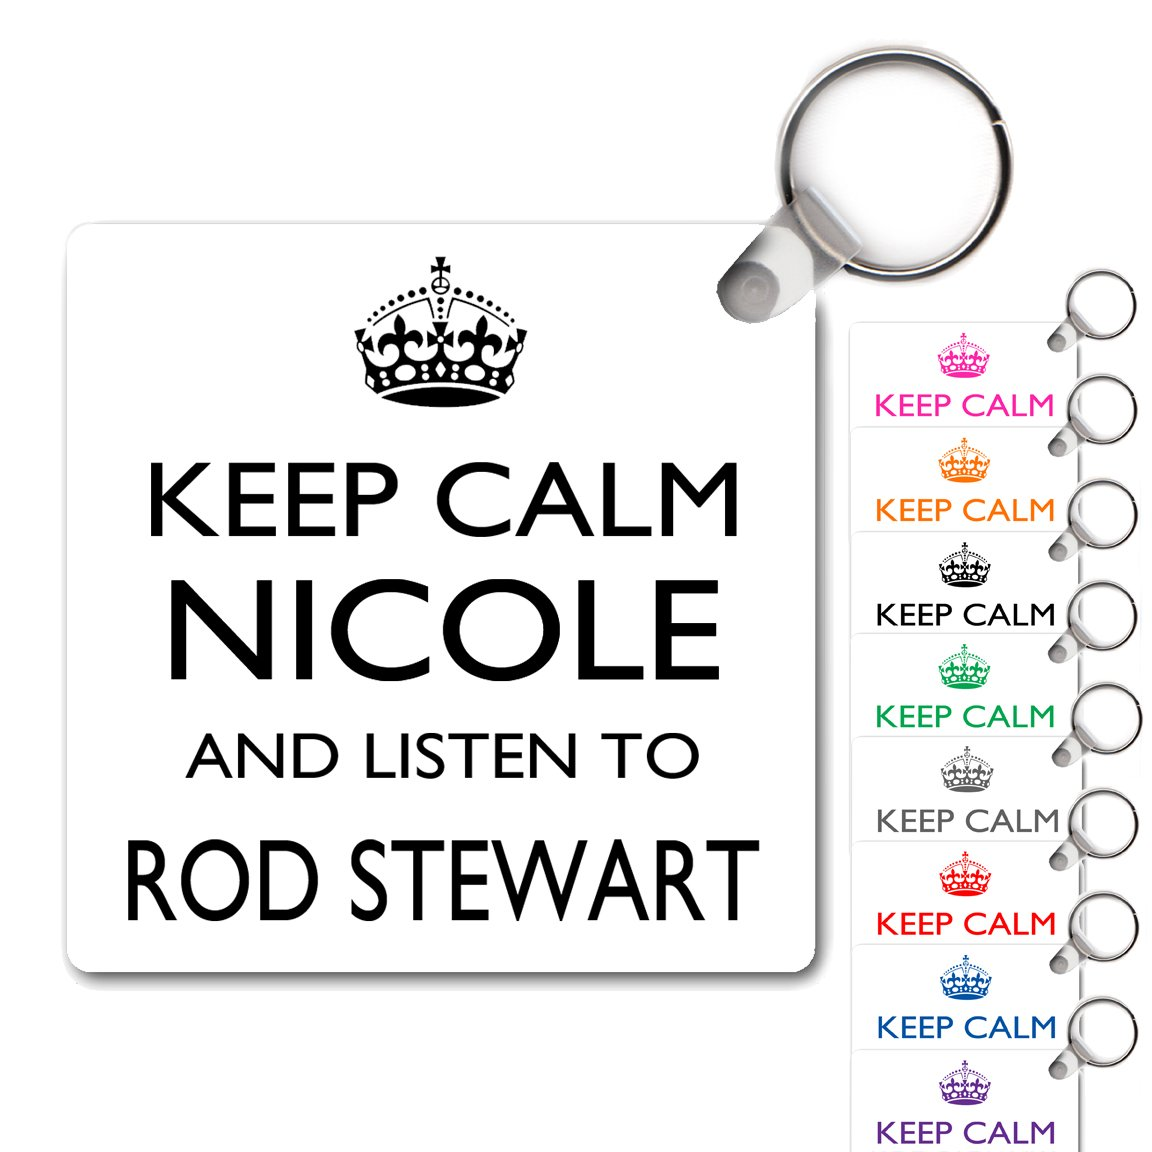 Personalised Square Acrylic Keyring Keep Calm /& Listen To Rod Stewart